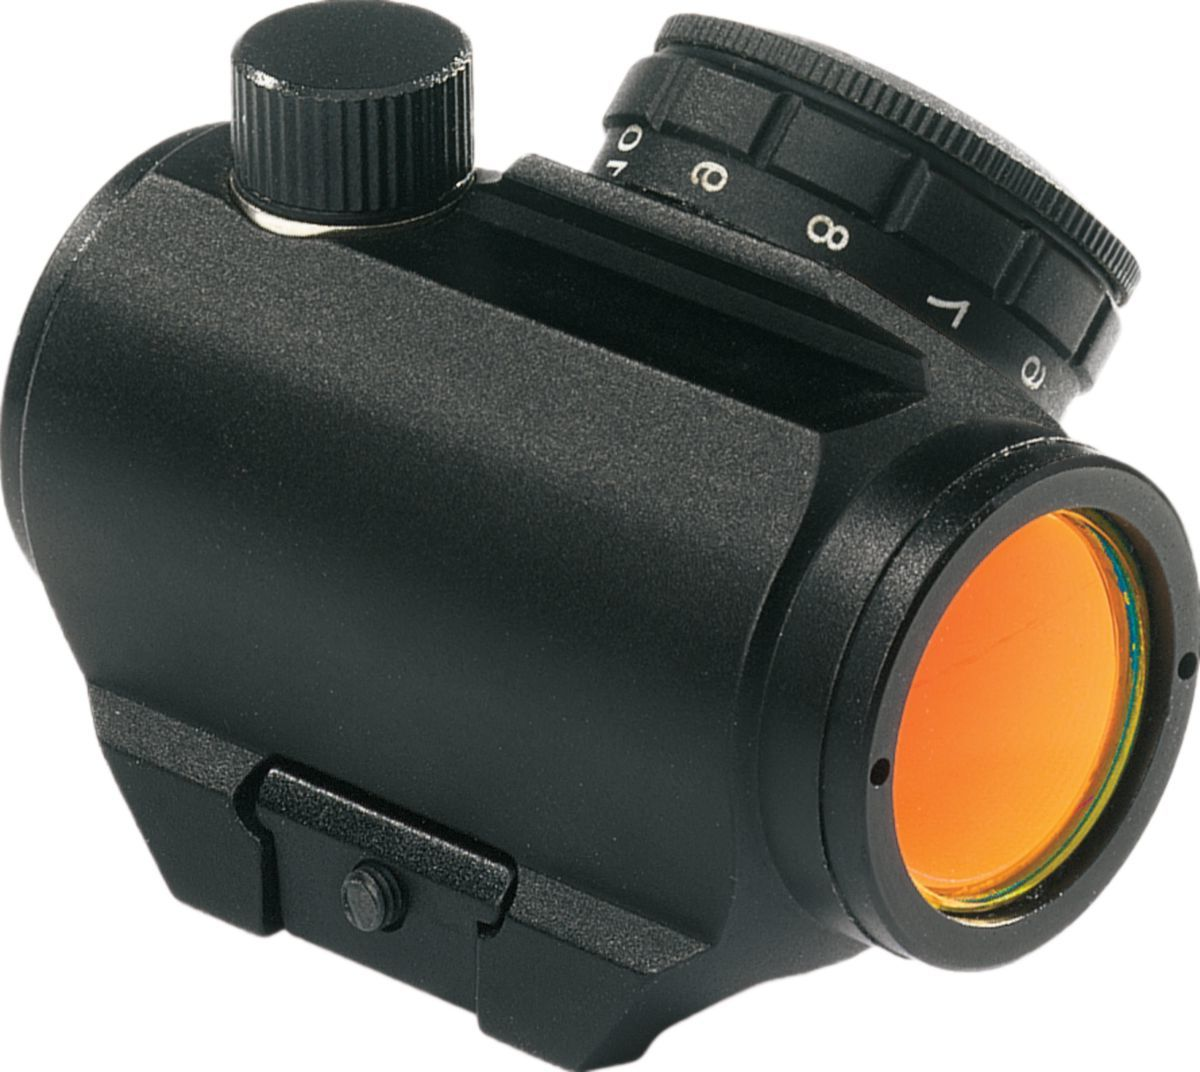 Bushnell® Trophy TRS-25 Red-Dot Sight